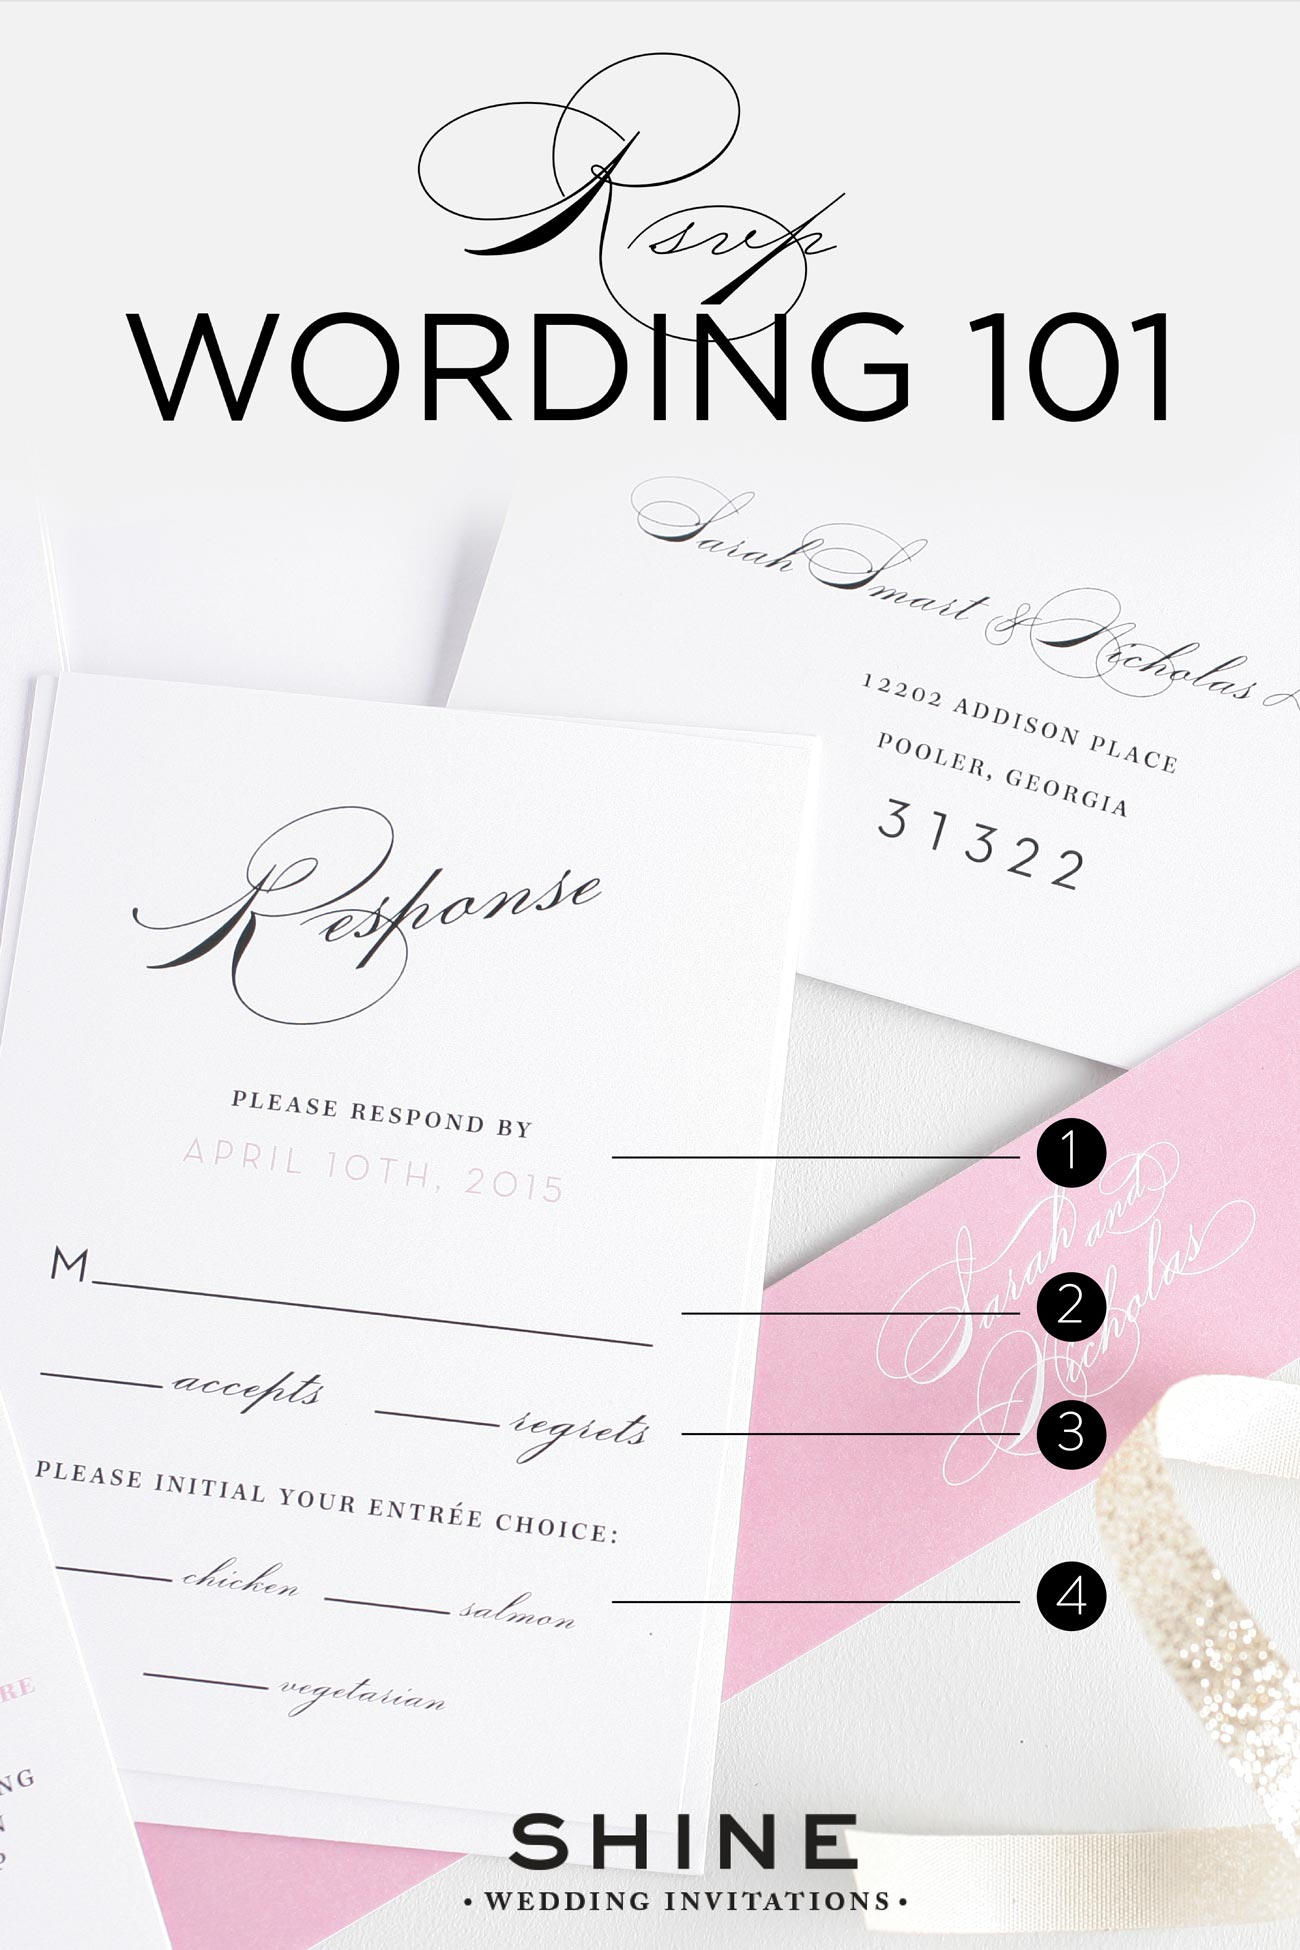 Rsvp wording 101 wedding invitations rsvp card wording 101 stopboris Choice Image